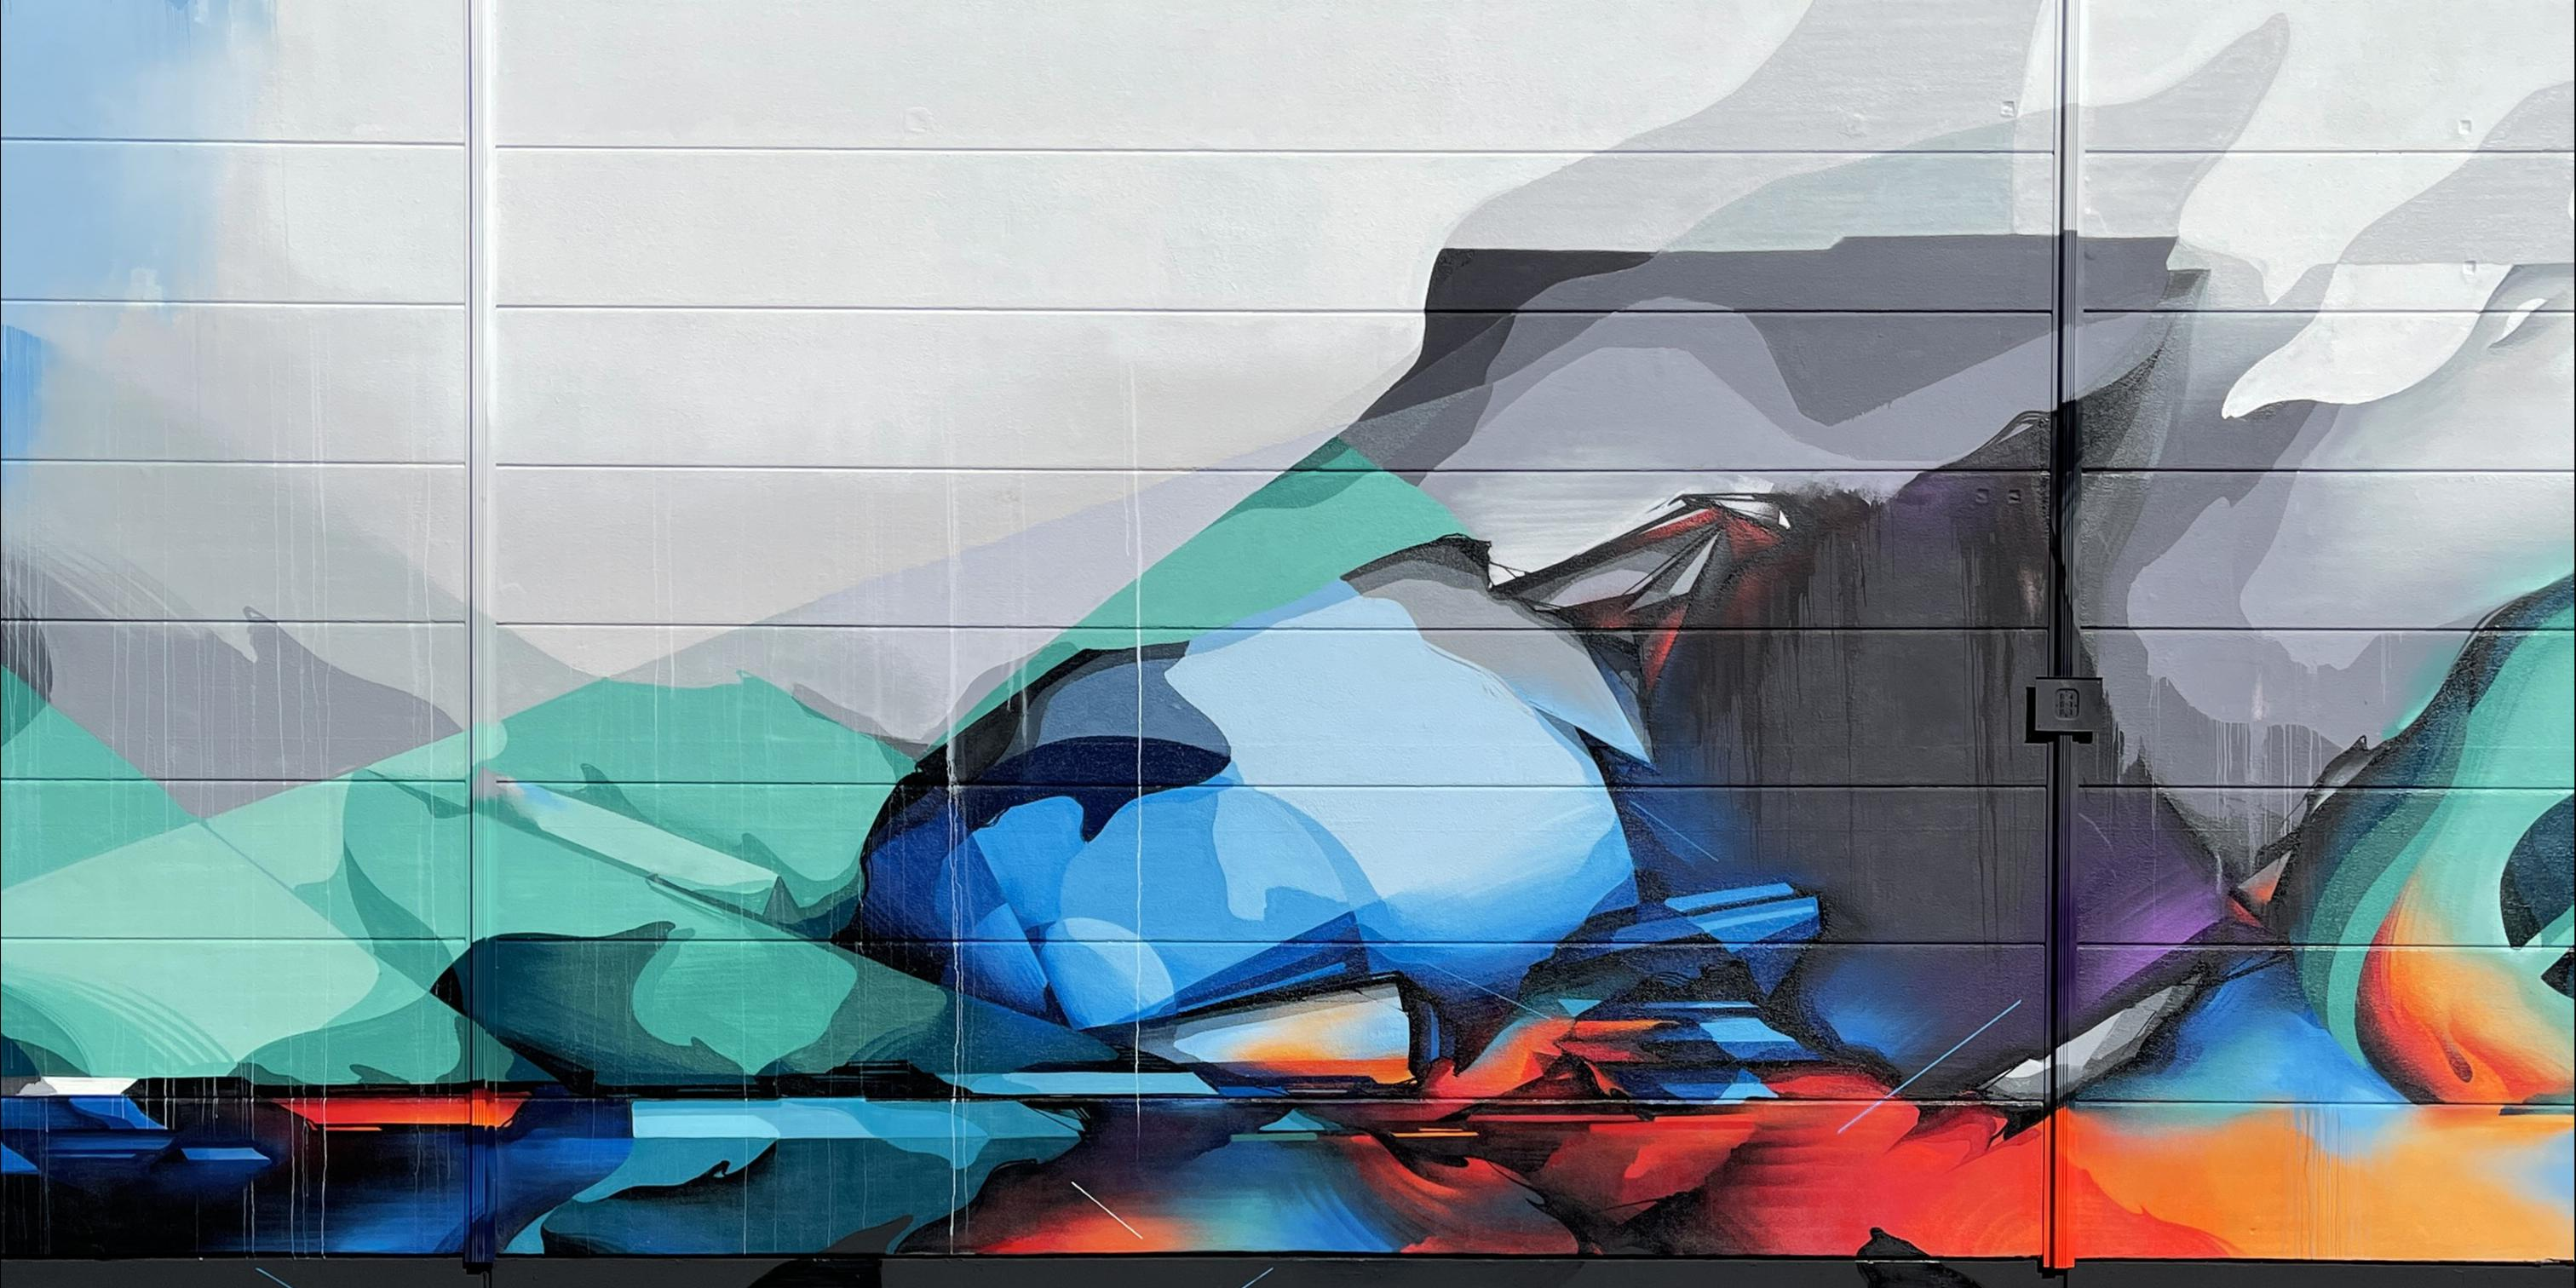 A work by Does - Helsingborg, Sweden_thumb